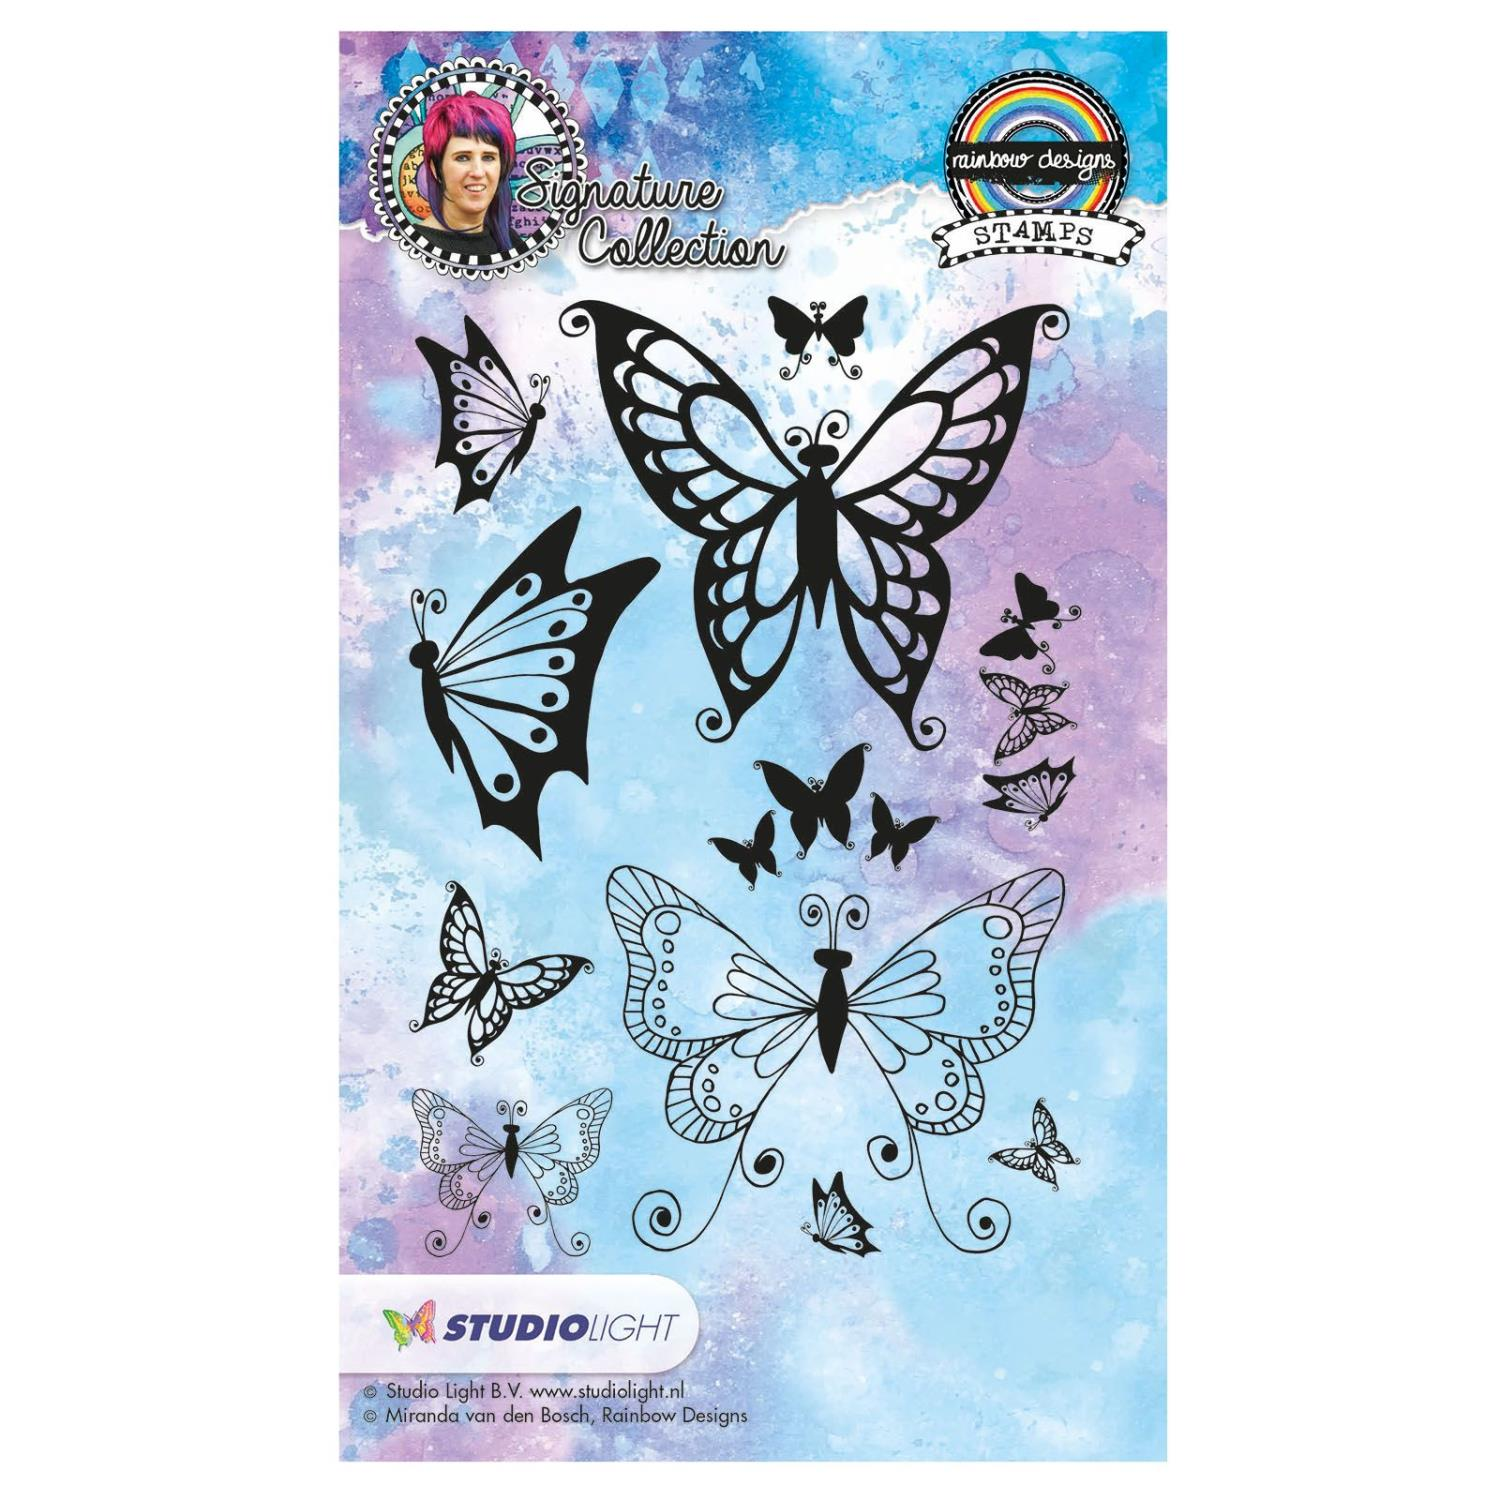 Studio Light clear stamp A6 Rainbow designs signature nr.18